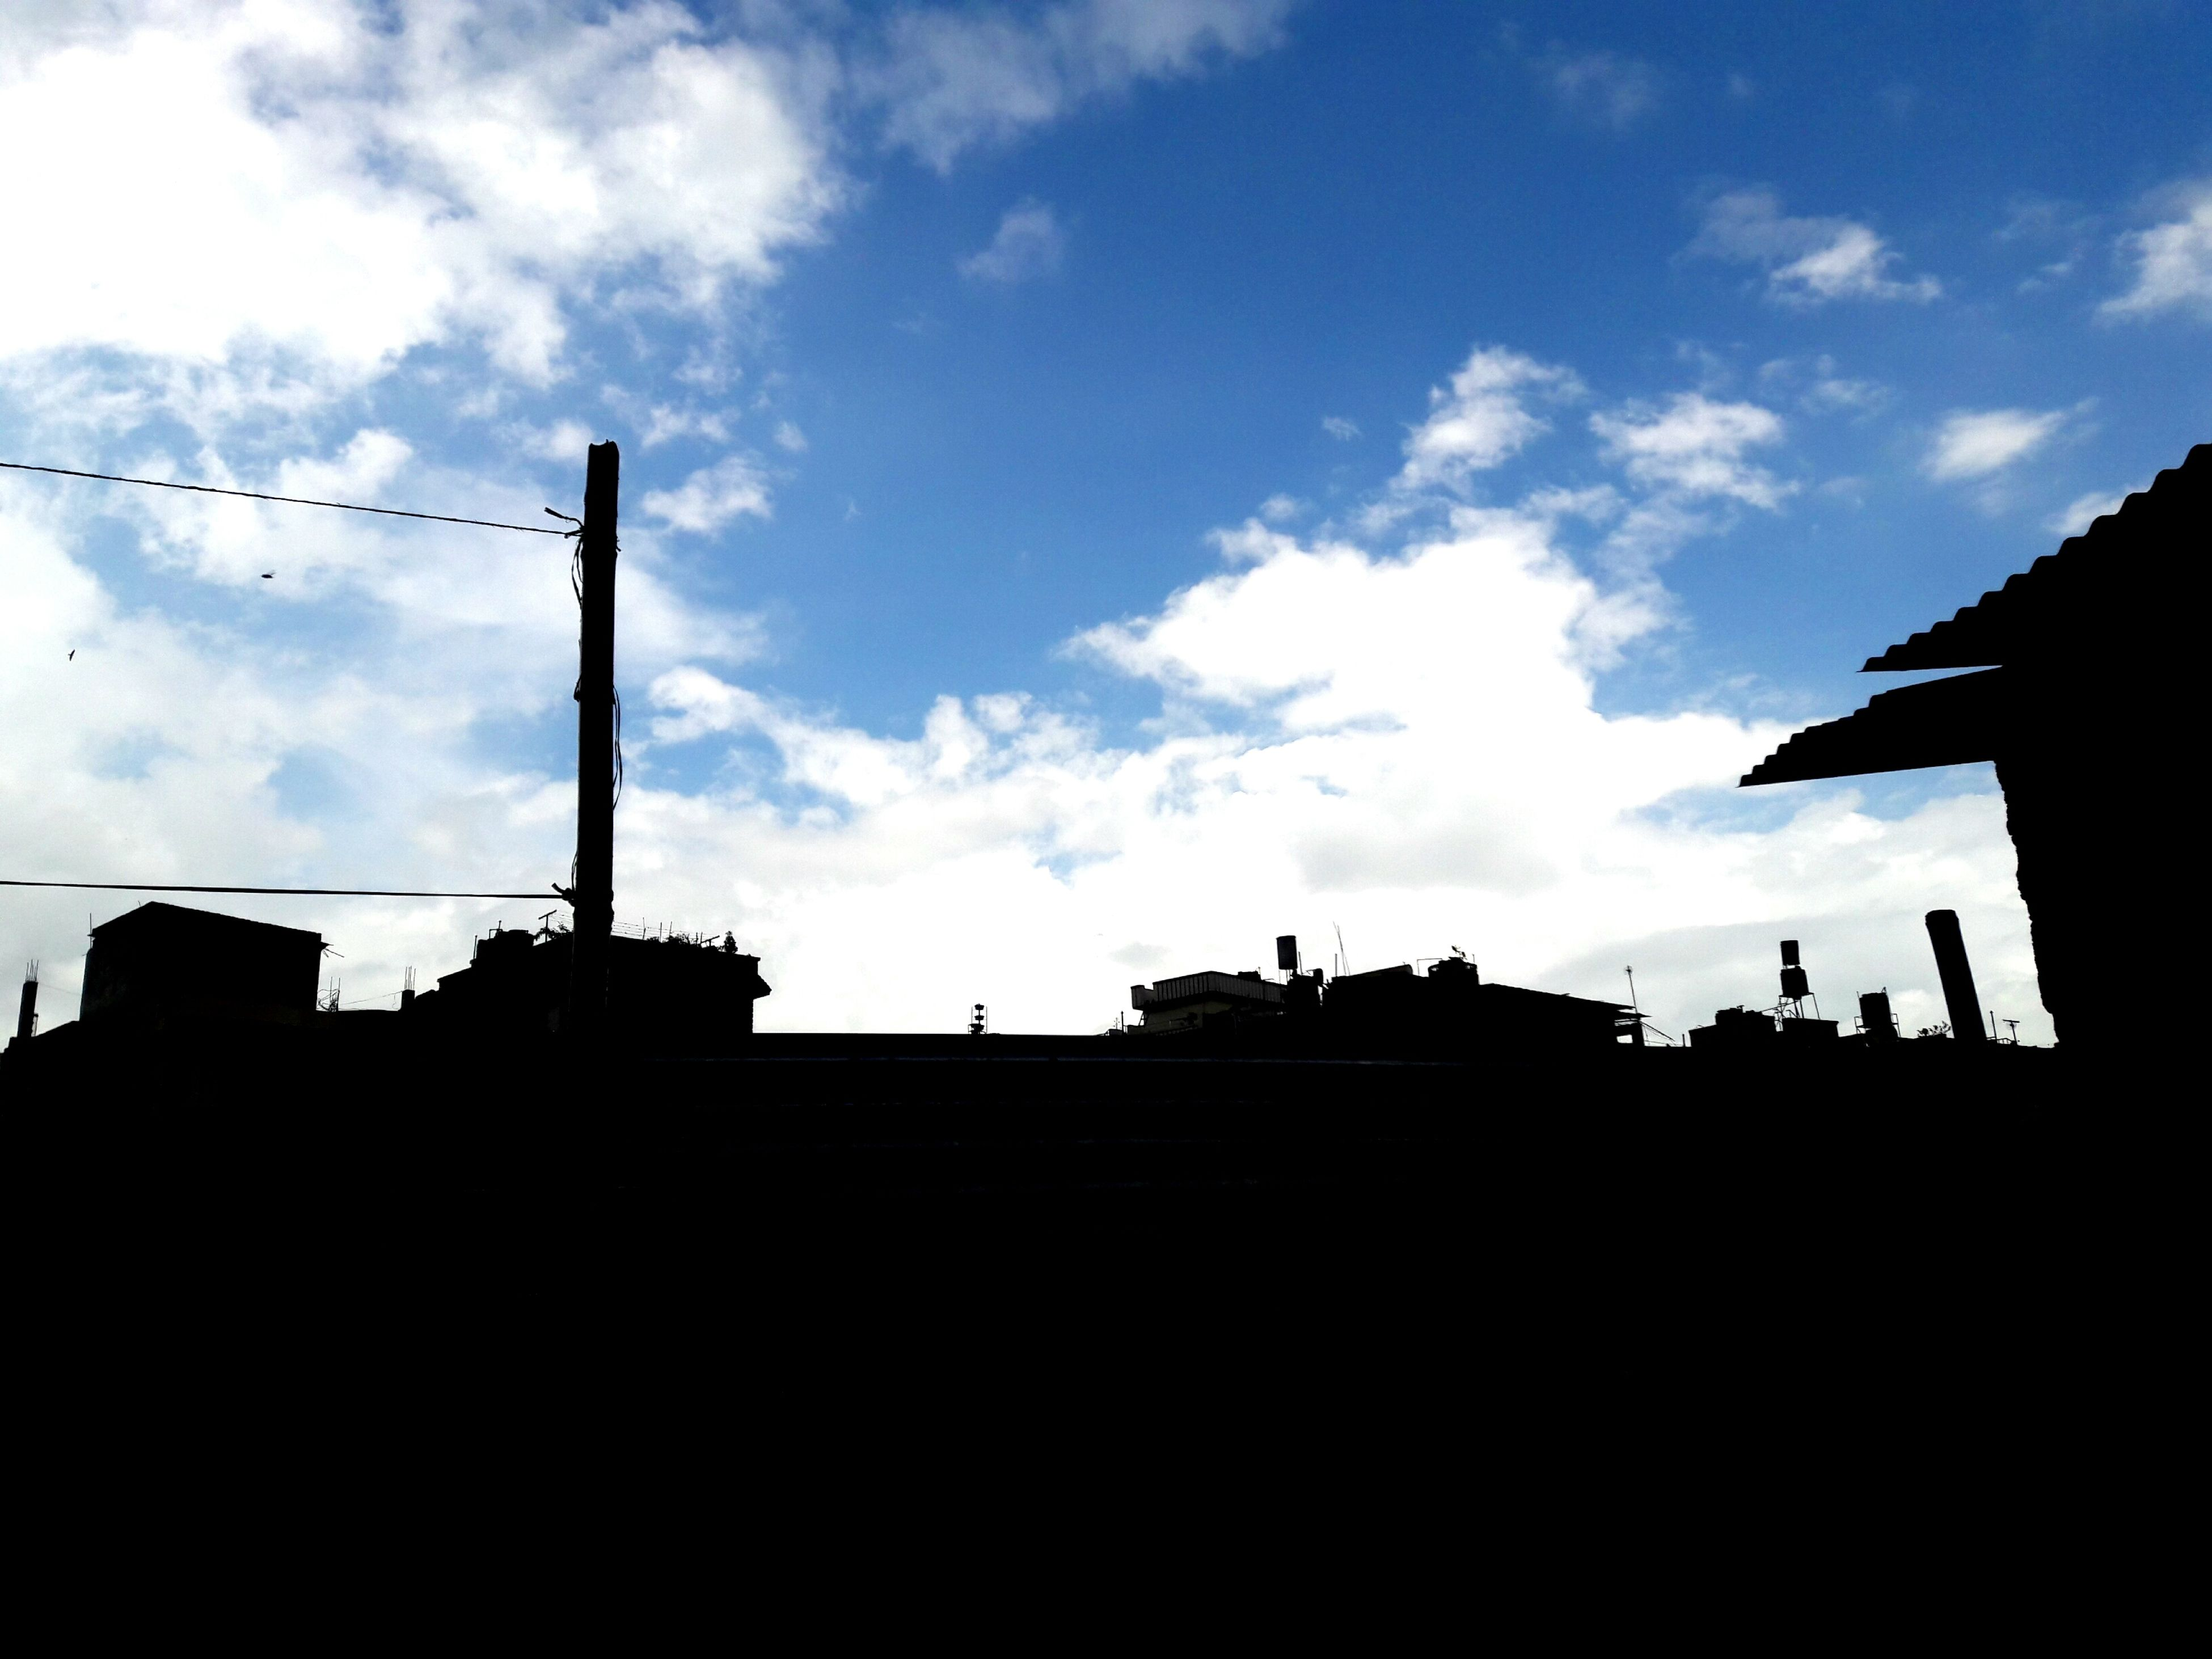 building exterior, architecture, built structure, sky, low angle view, cloud - sky, cloud, building, cloudy, outdoors, high section, day, no people, blue, nature, dark